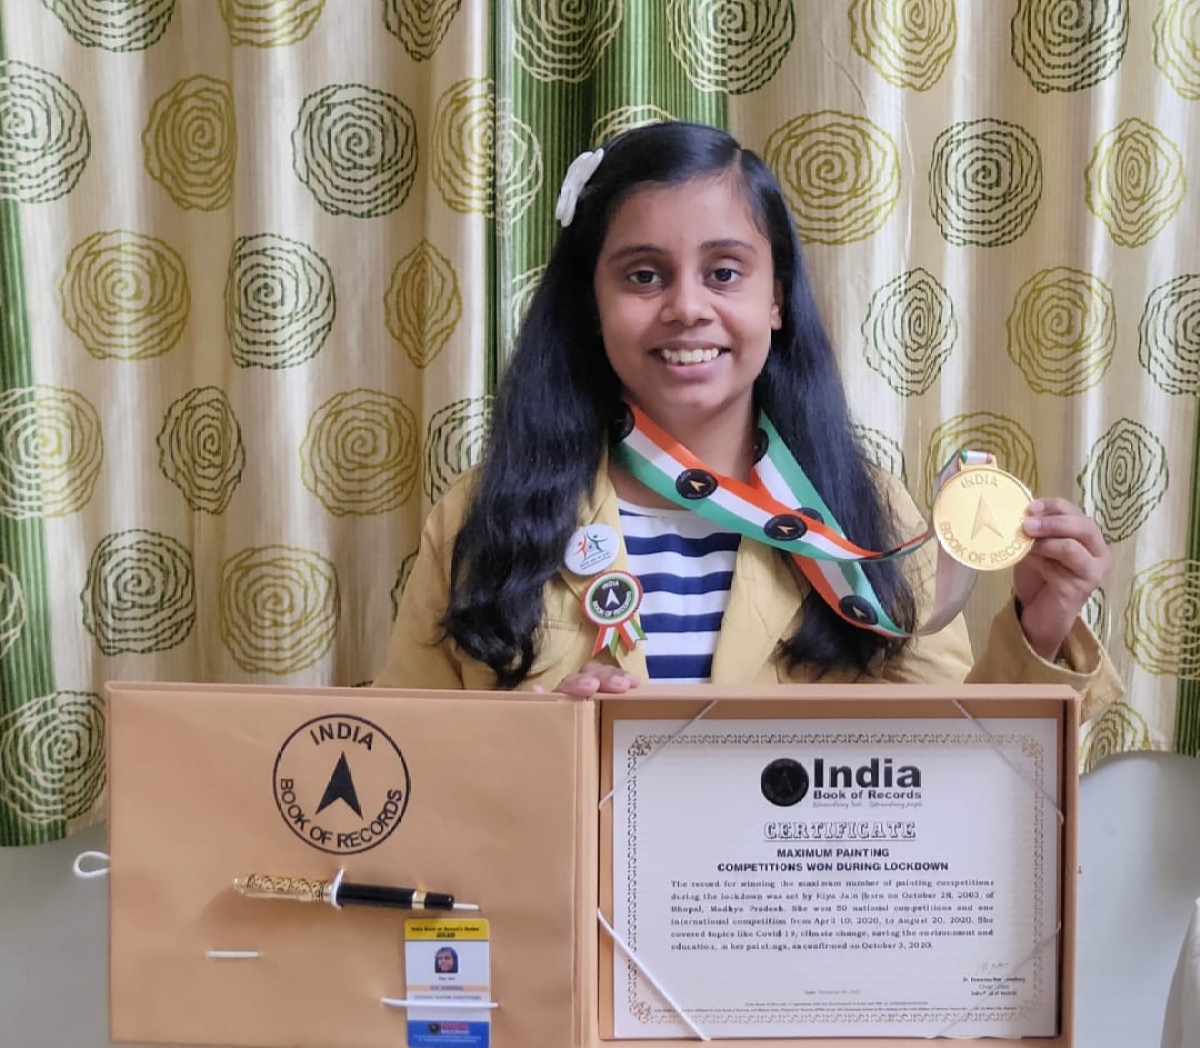 Riya Jain with her certificate and medal